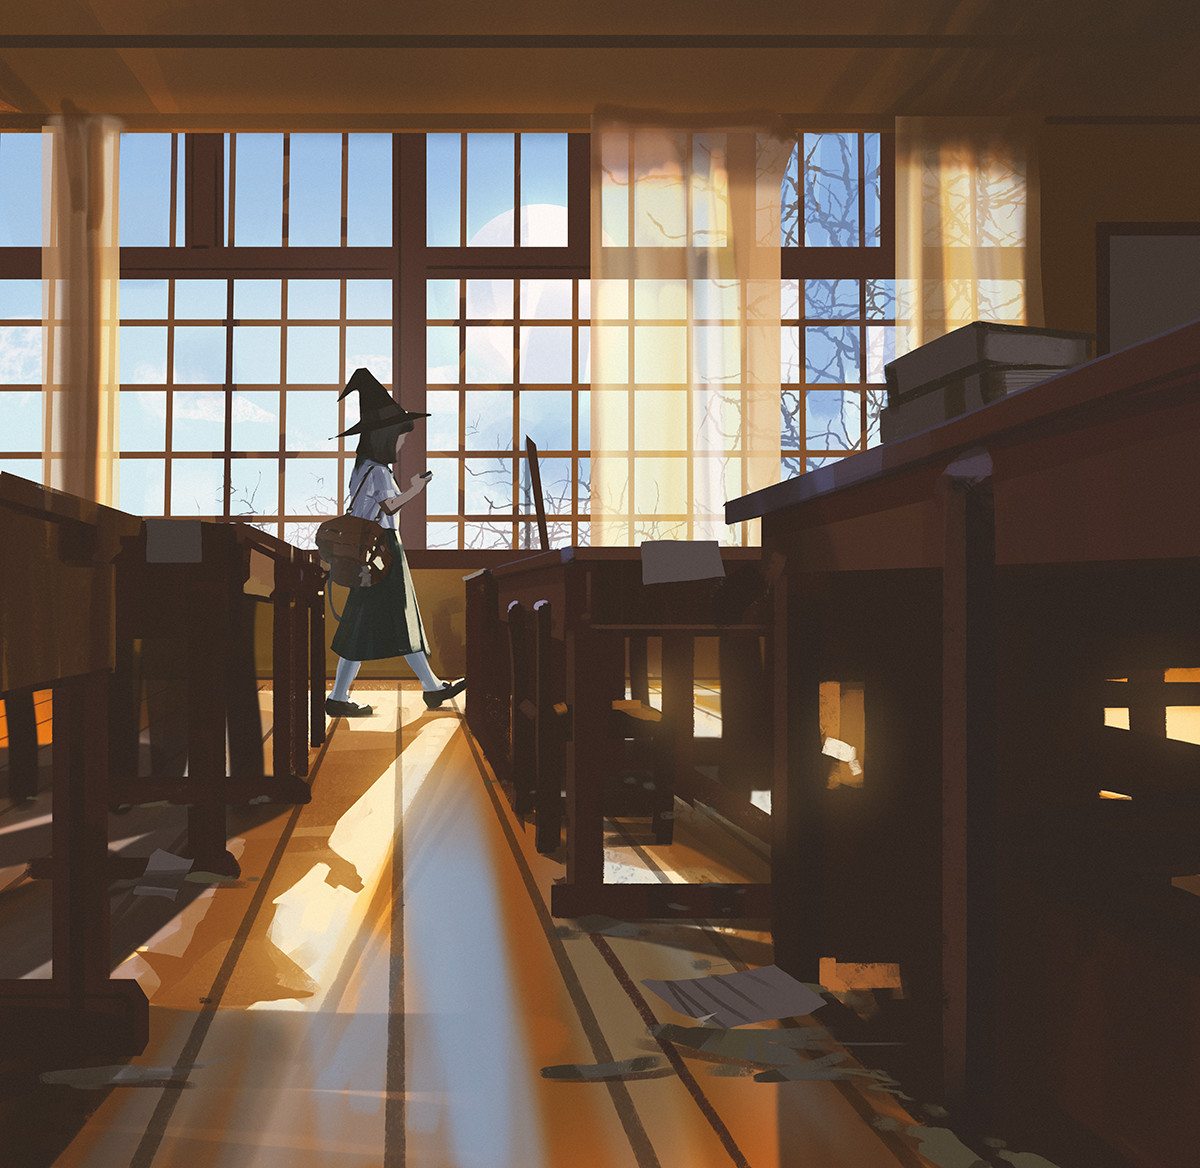 Sketch collection 22 2018 End of class, Atey Ghailan_02